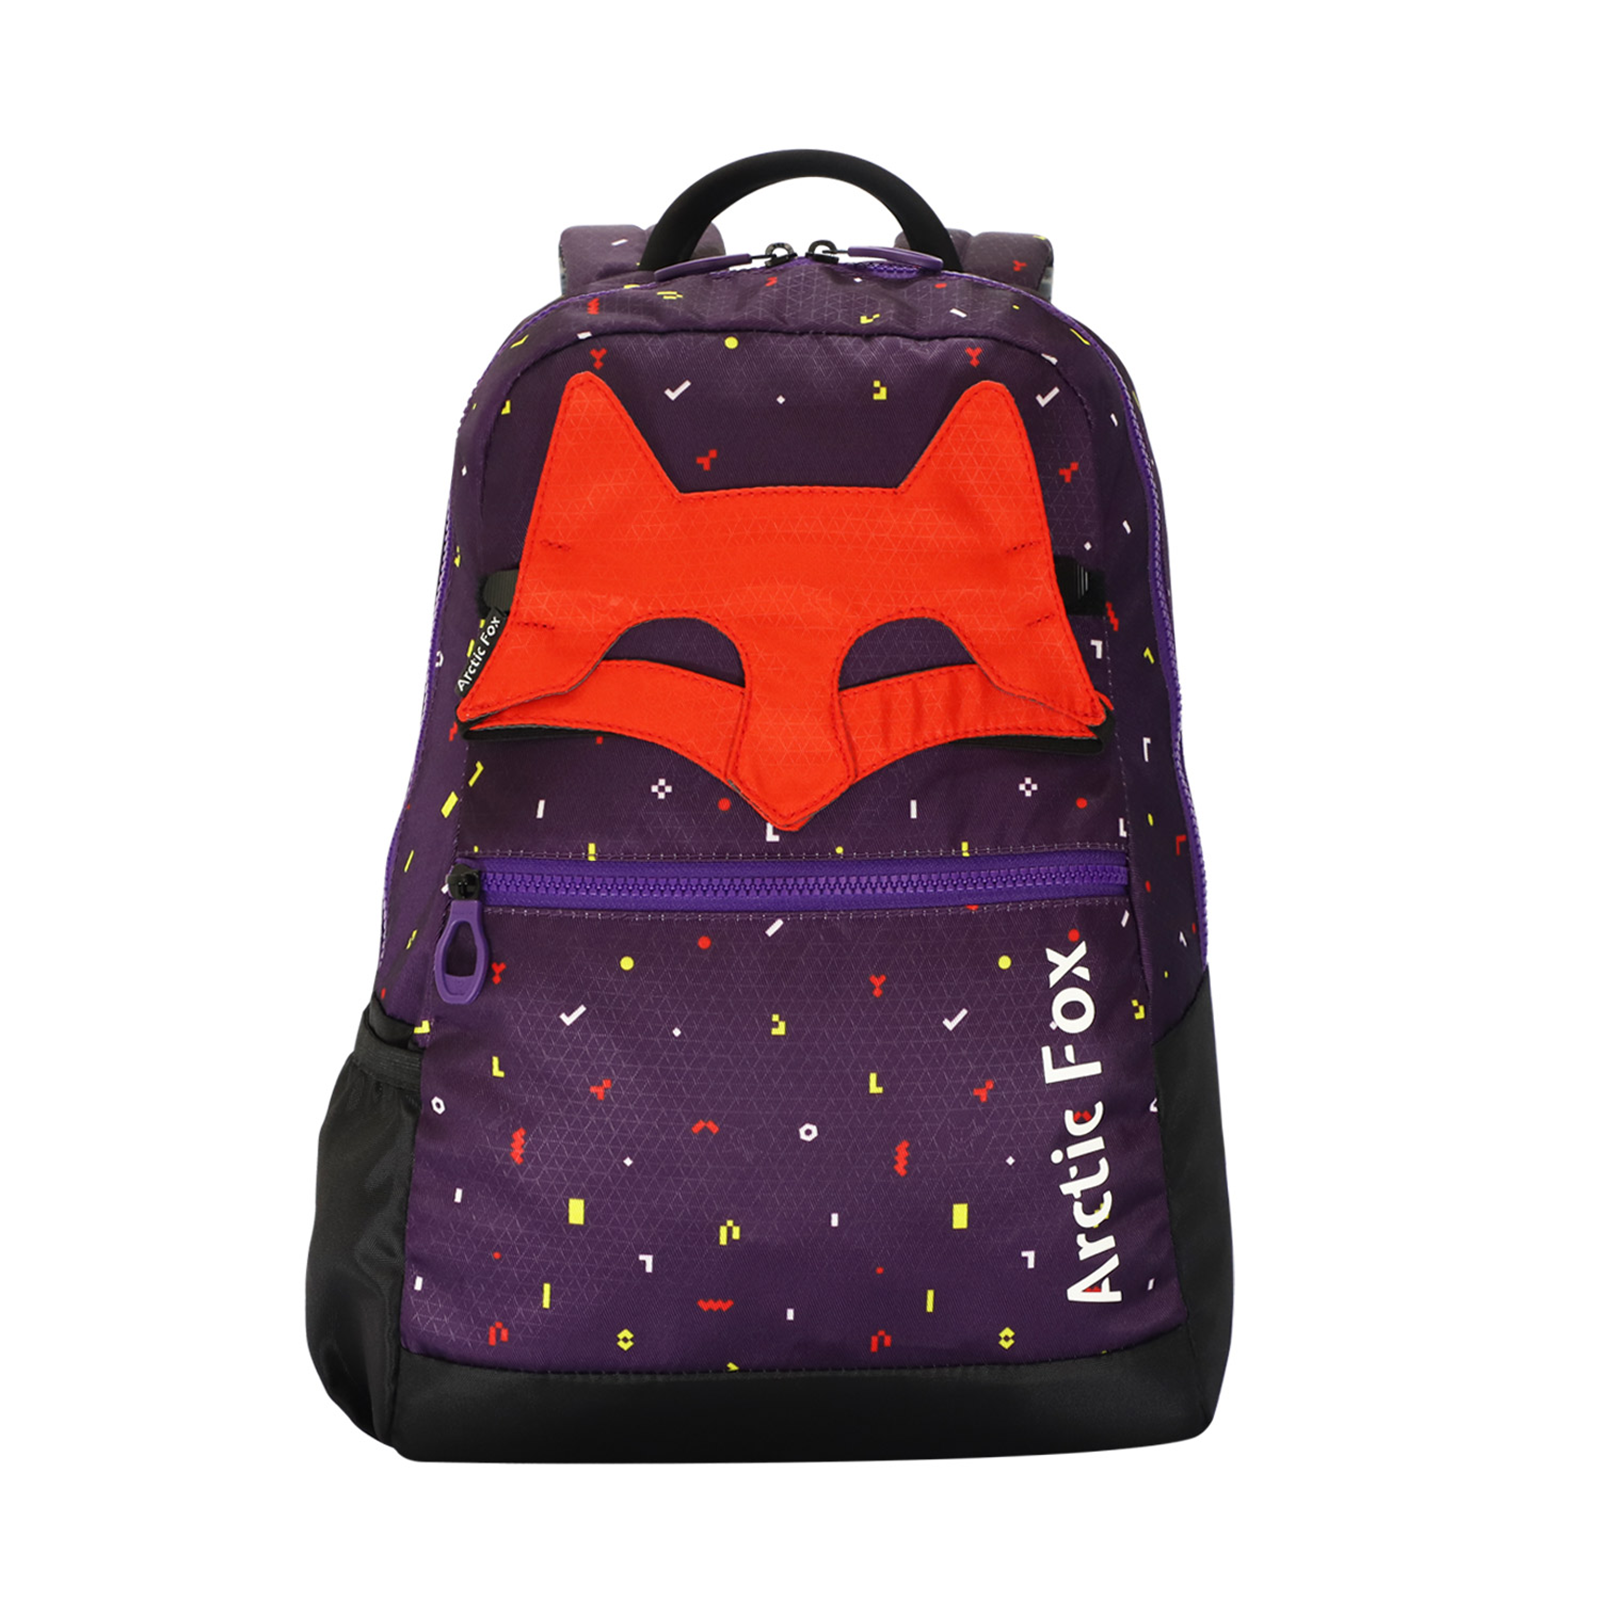 Arctic Fox Mask Petunia 17 Litres Twill Polyester Kids Backpack(Water Repellent Fabric, FKIBPKPETON005017, Purple)_1